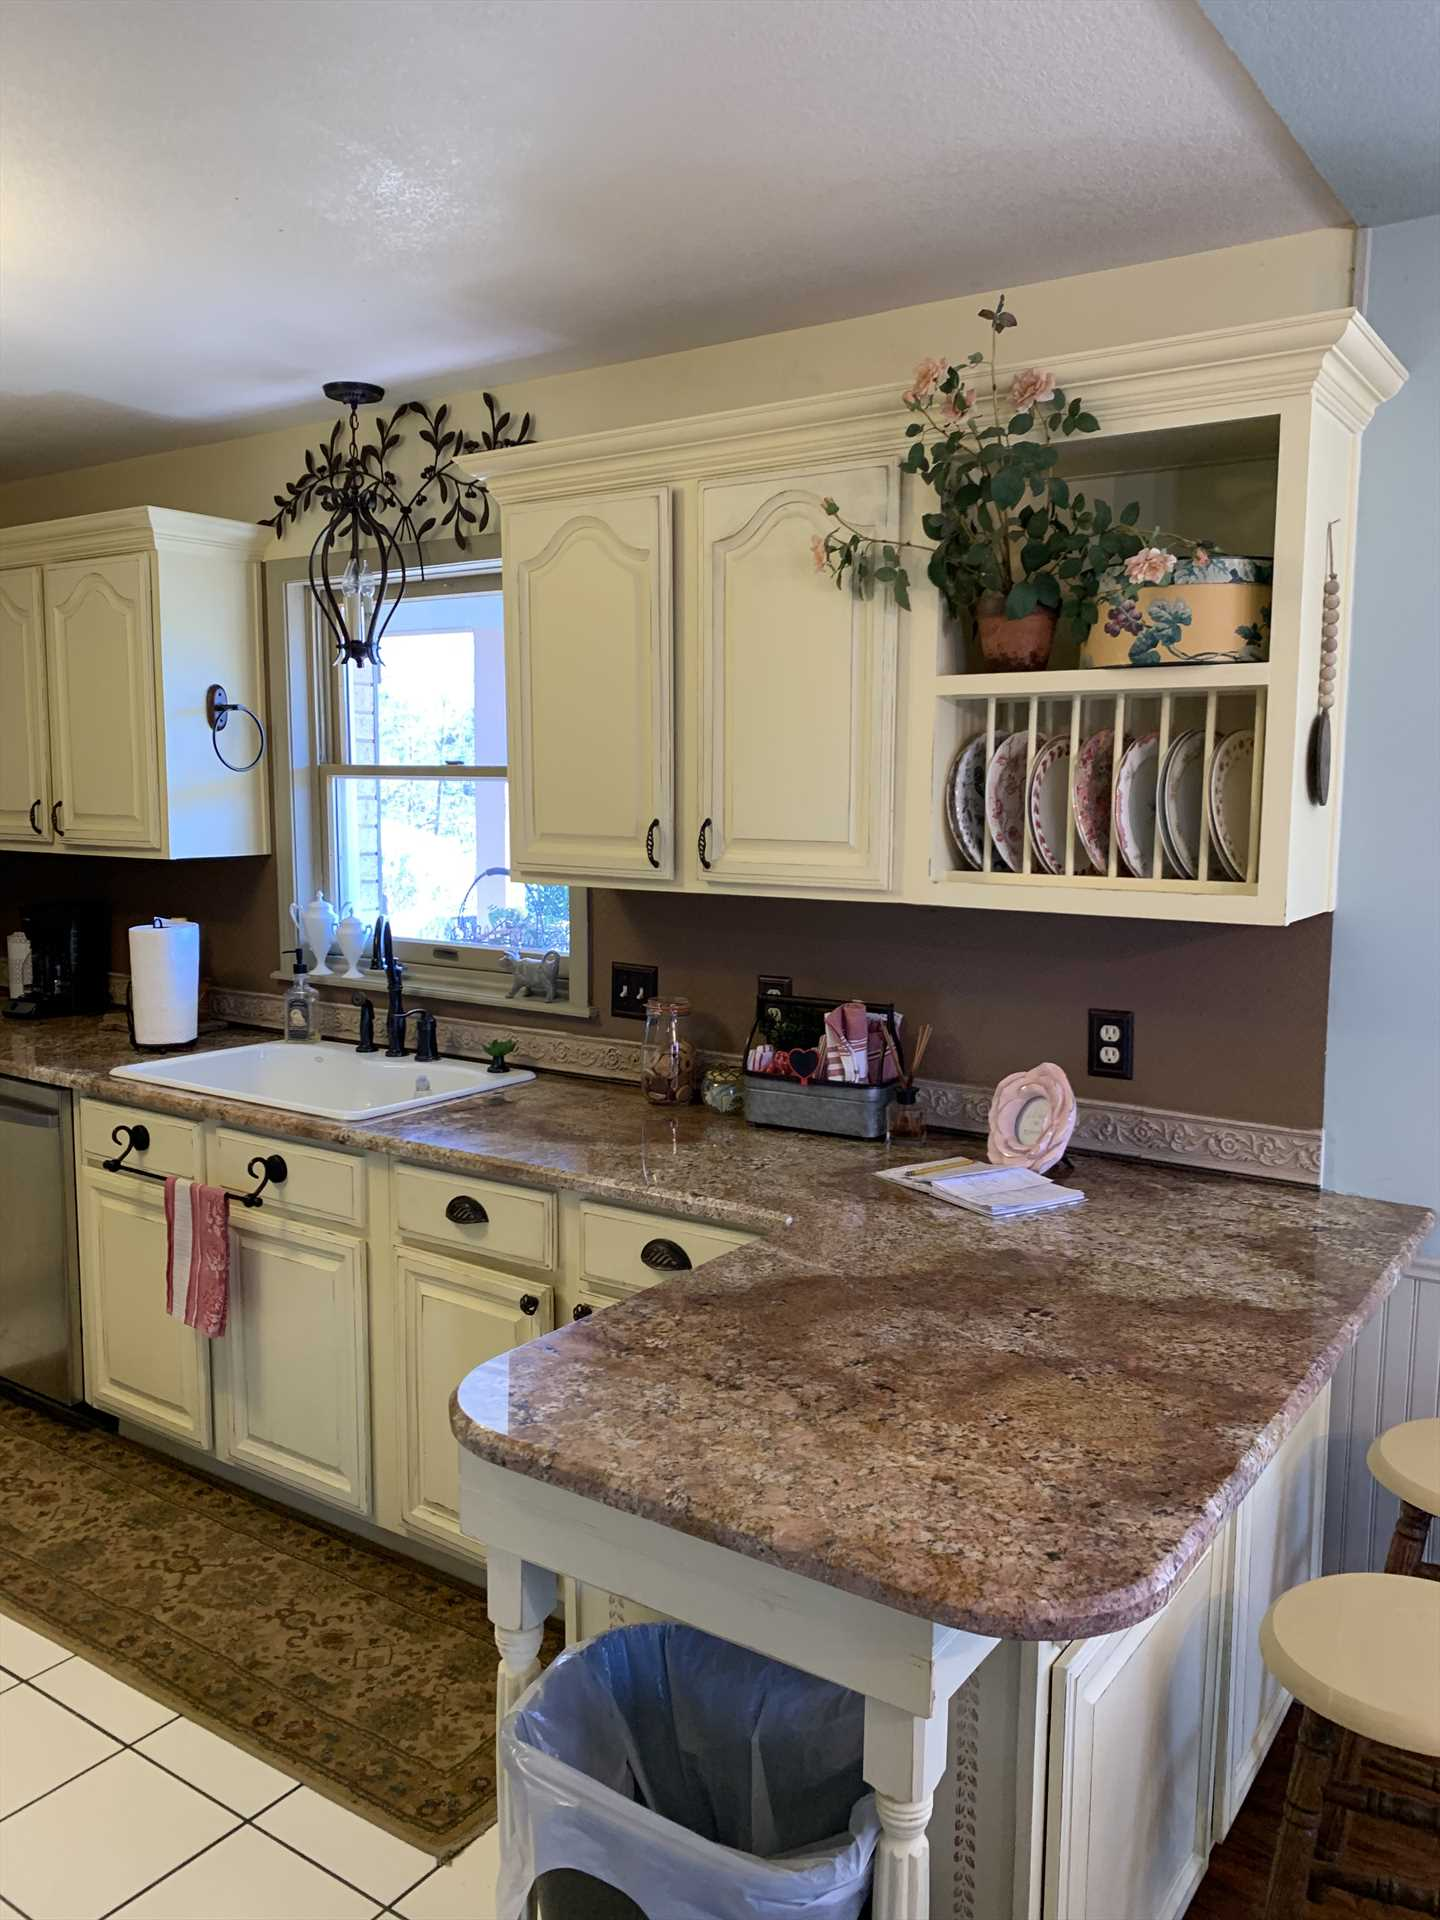 Cooks and food fanatics alike will love the modern appliances and tons of counter space in the enormous kitchen!